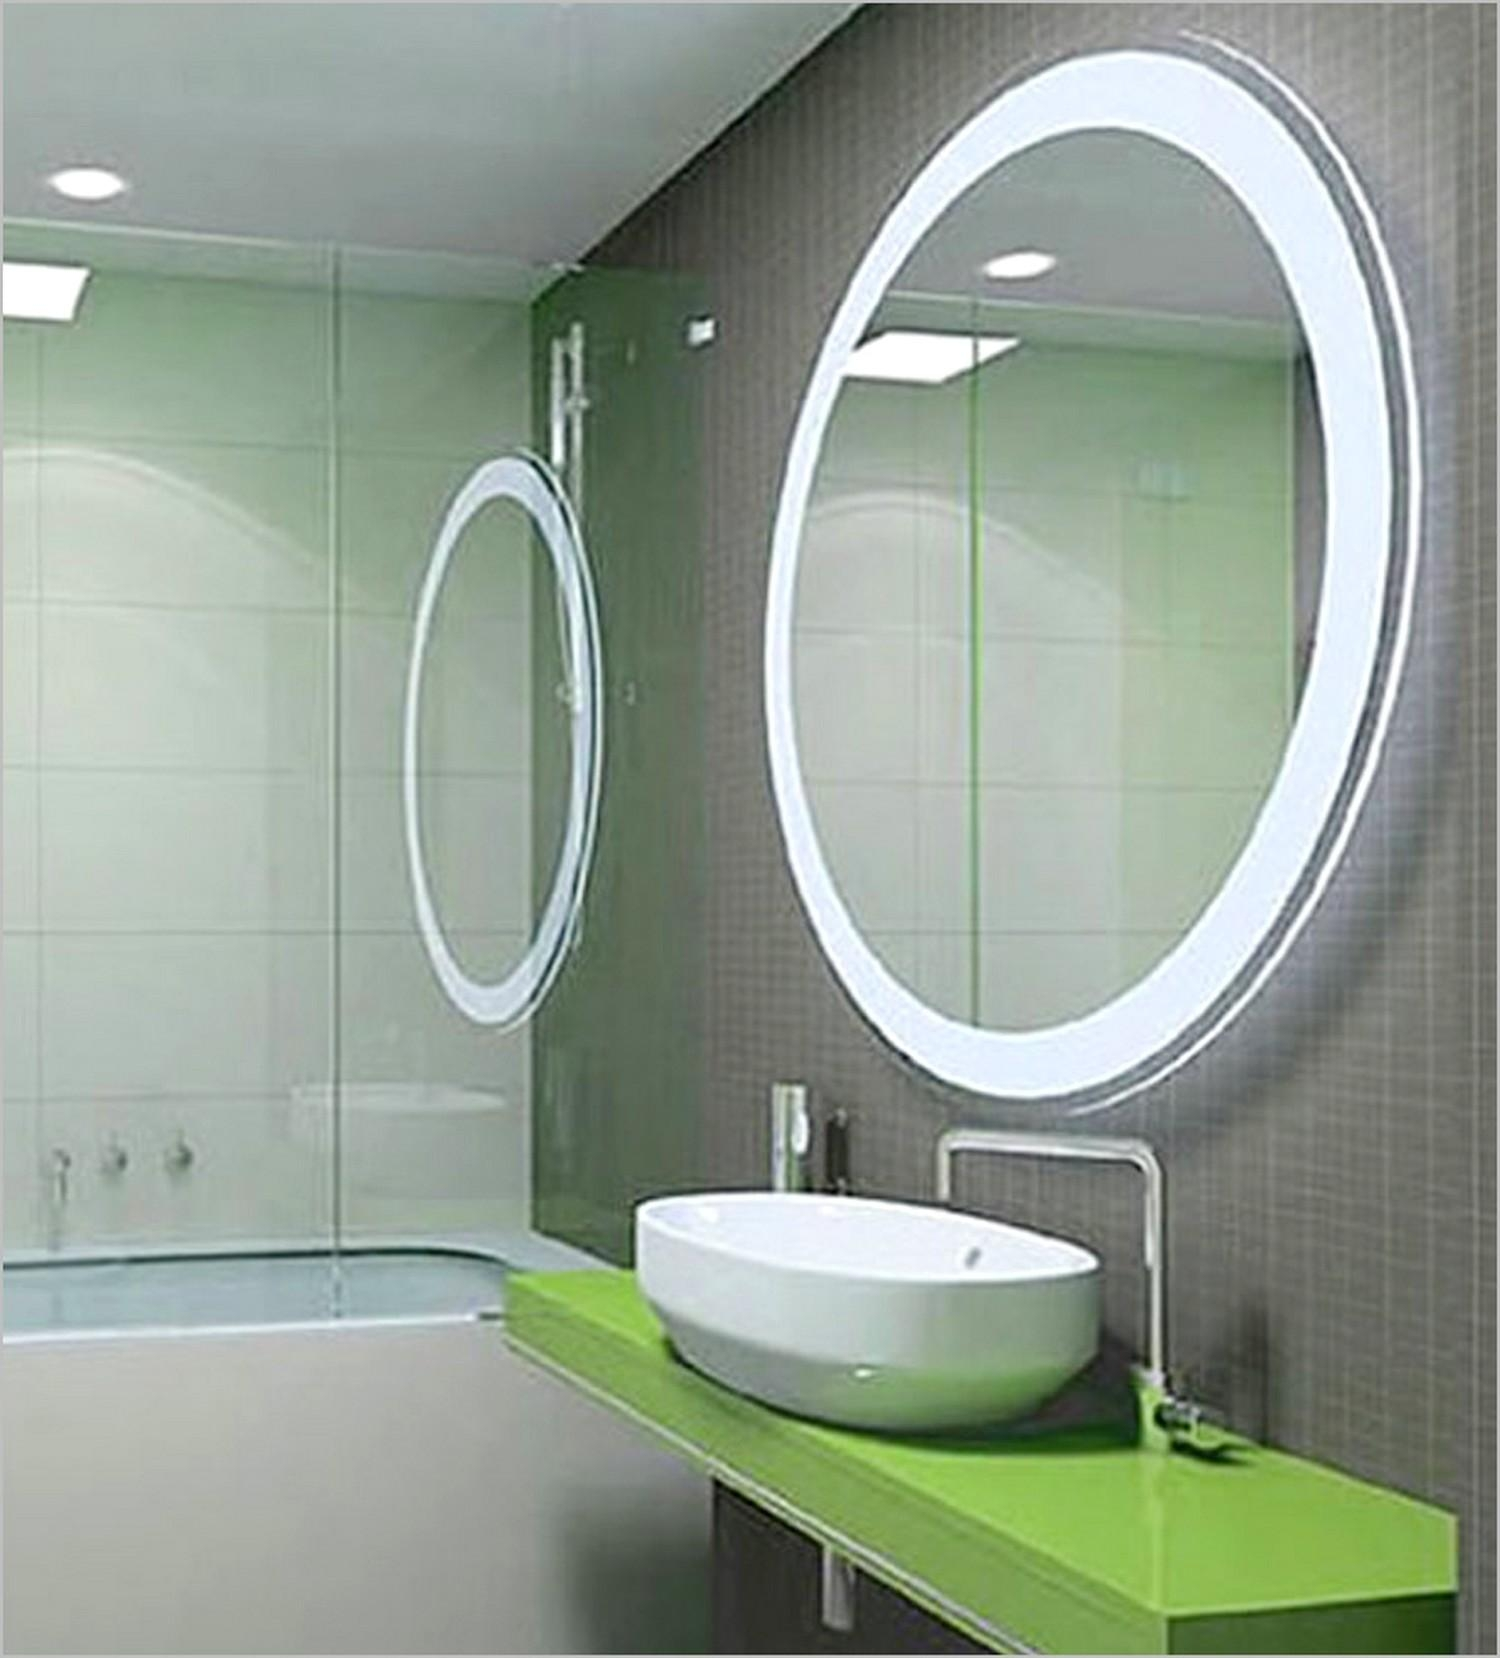 Bathroom: Oval Wall Mirror With Led Light For Bathroom Wall Mirror For Bathroom Wall Mirrors With Lights (Photo 3 of 20)